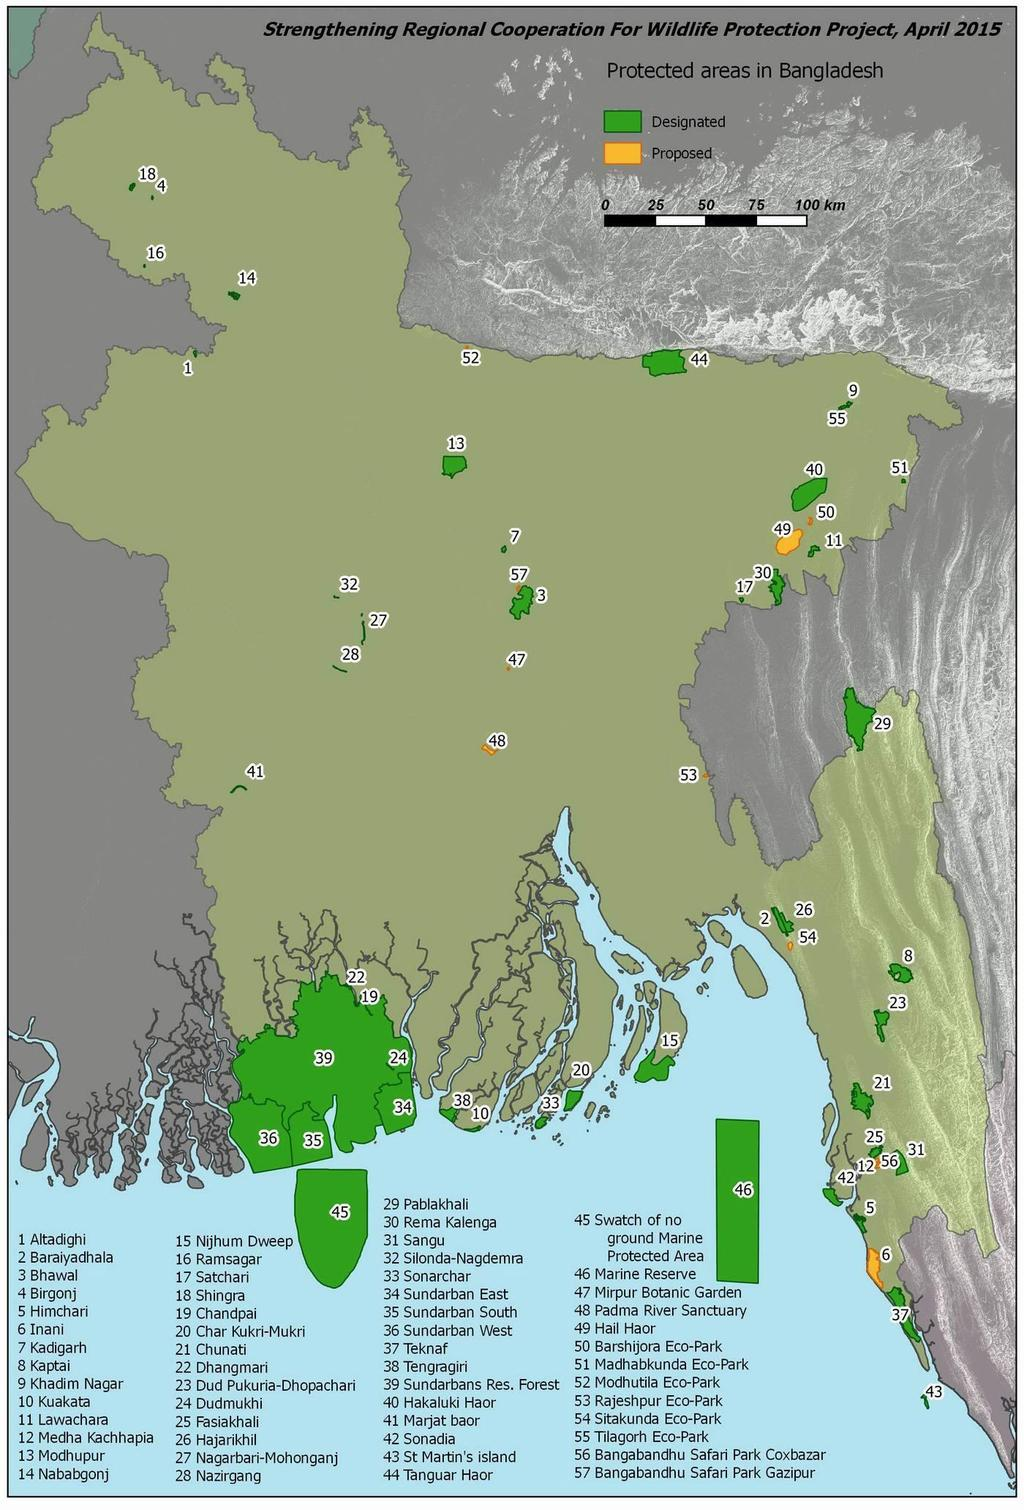 Note: Further discussion on issues related to wildlife management can be found in Chapter 10. Map 1-4: Protected Areas in Bangladesh.